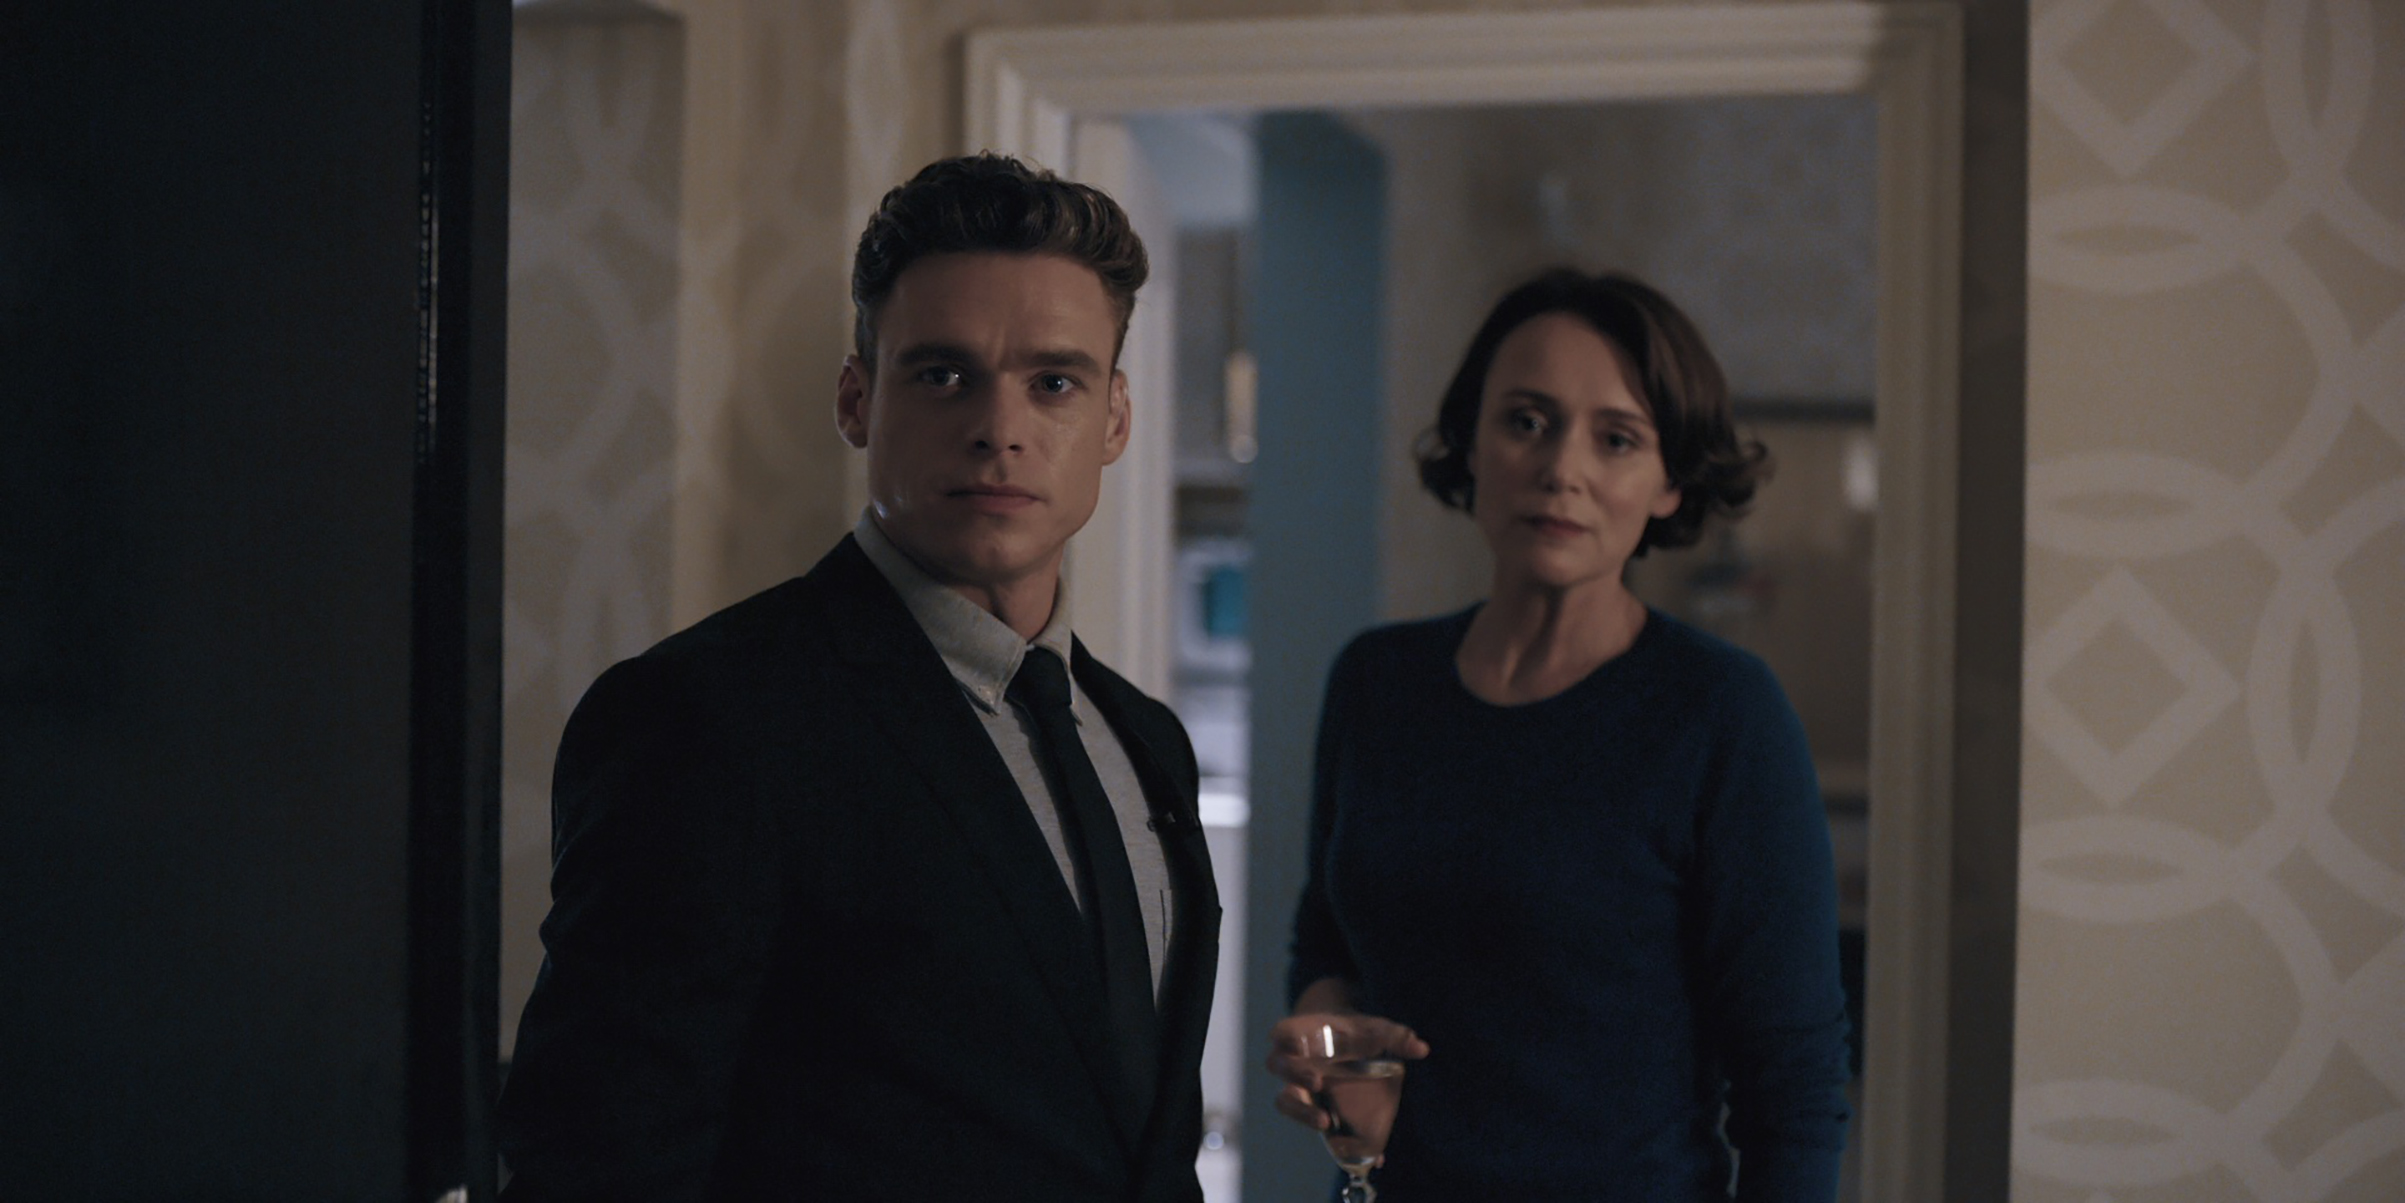 Madden and Hawes in Netflix's Bodyguard